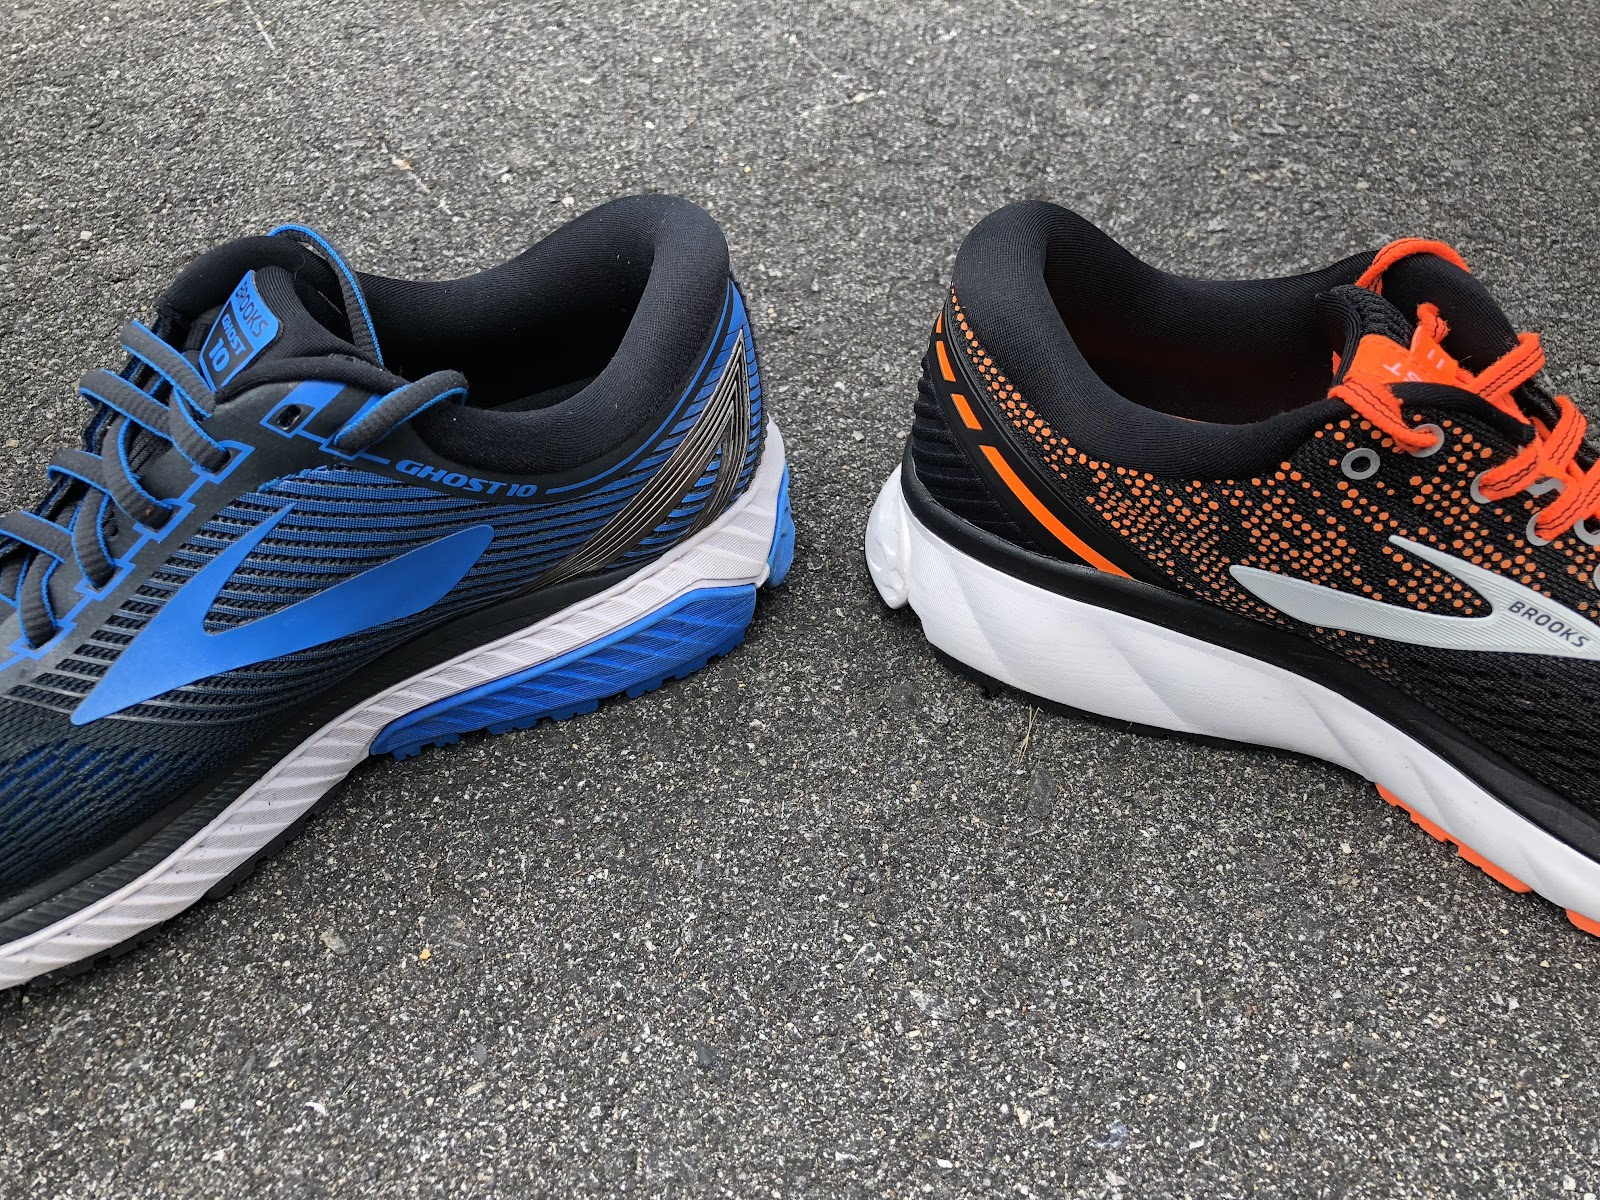 53c322fe781c6 Road Trail Run  Brooks Running Ghost 11 Review  Top to Bottom ...